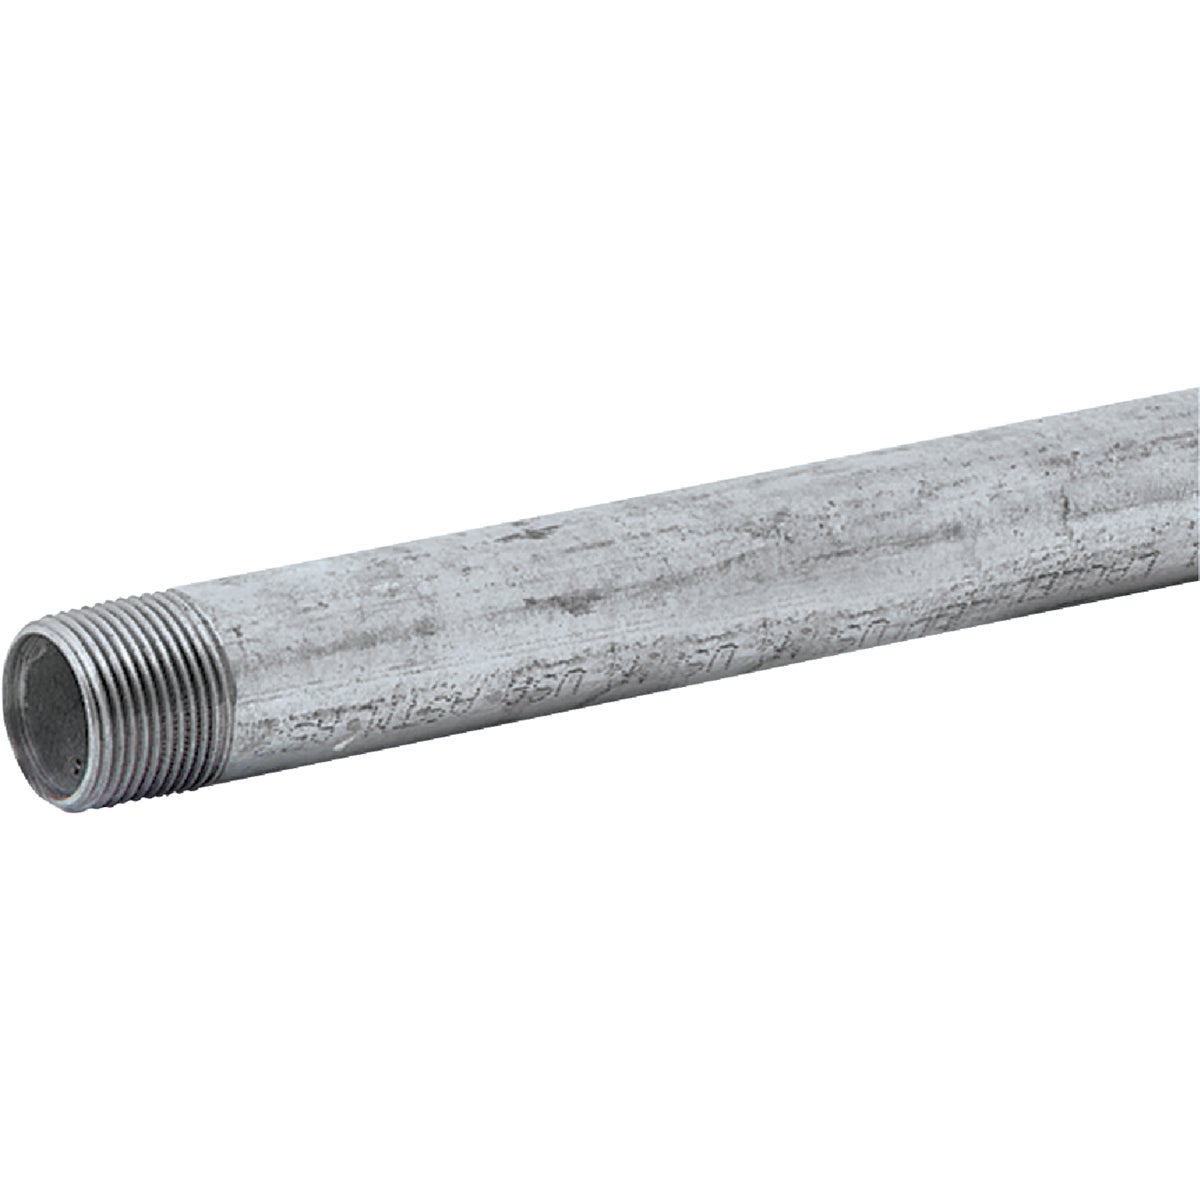 "1/8""X10' GALV PIPE - 10124 by Southland Pipe"